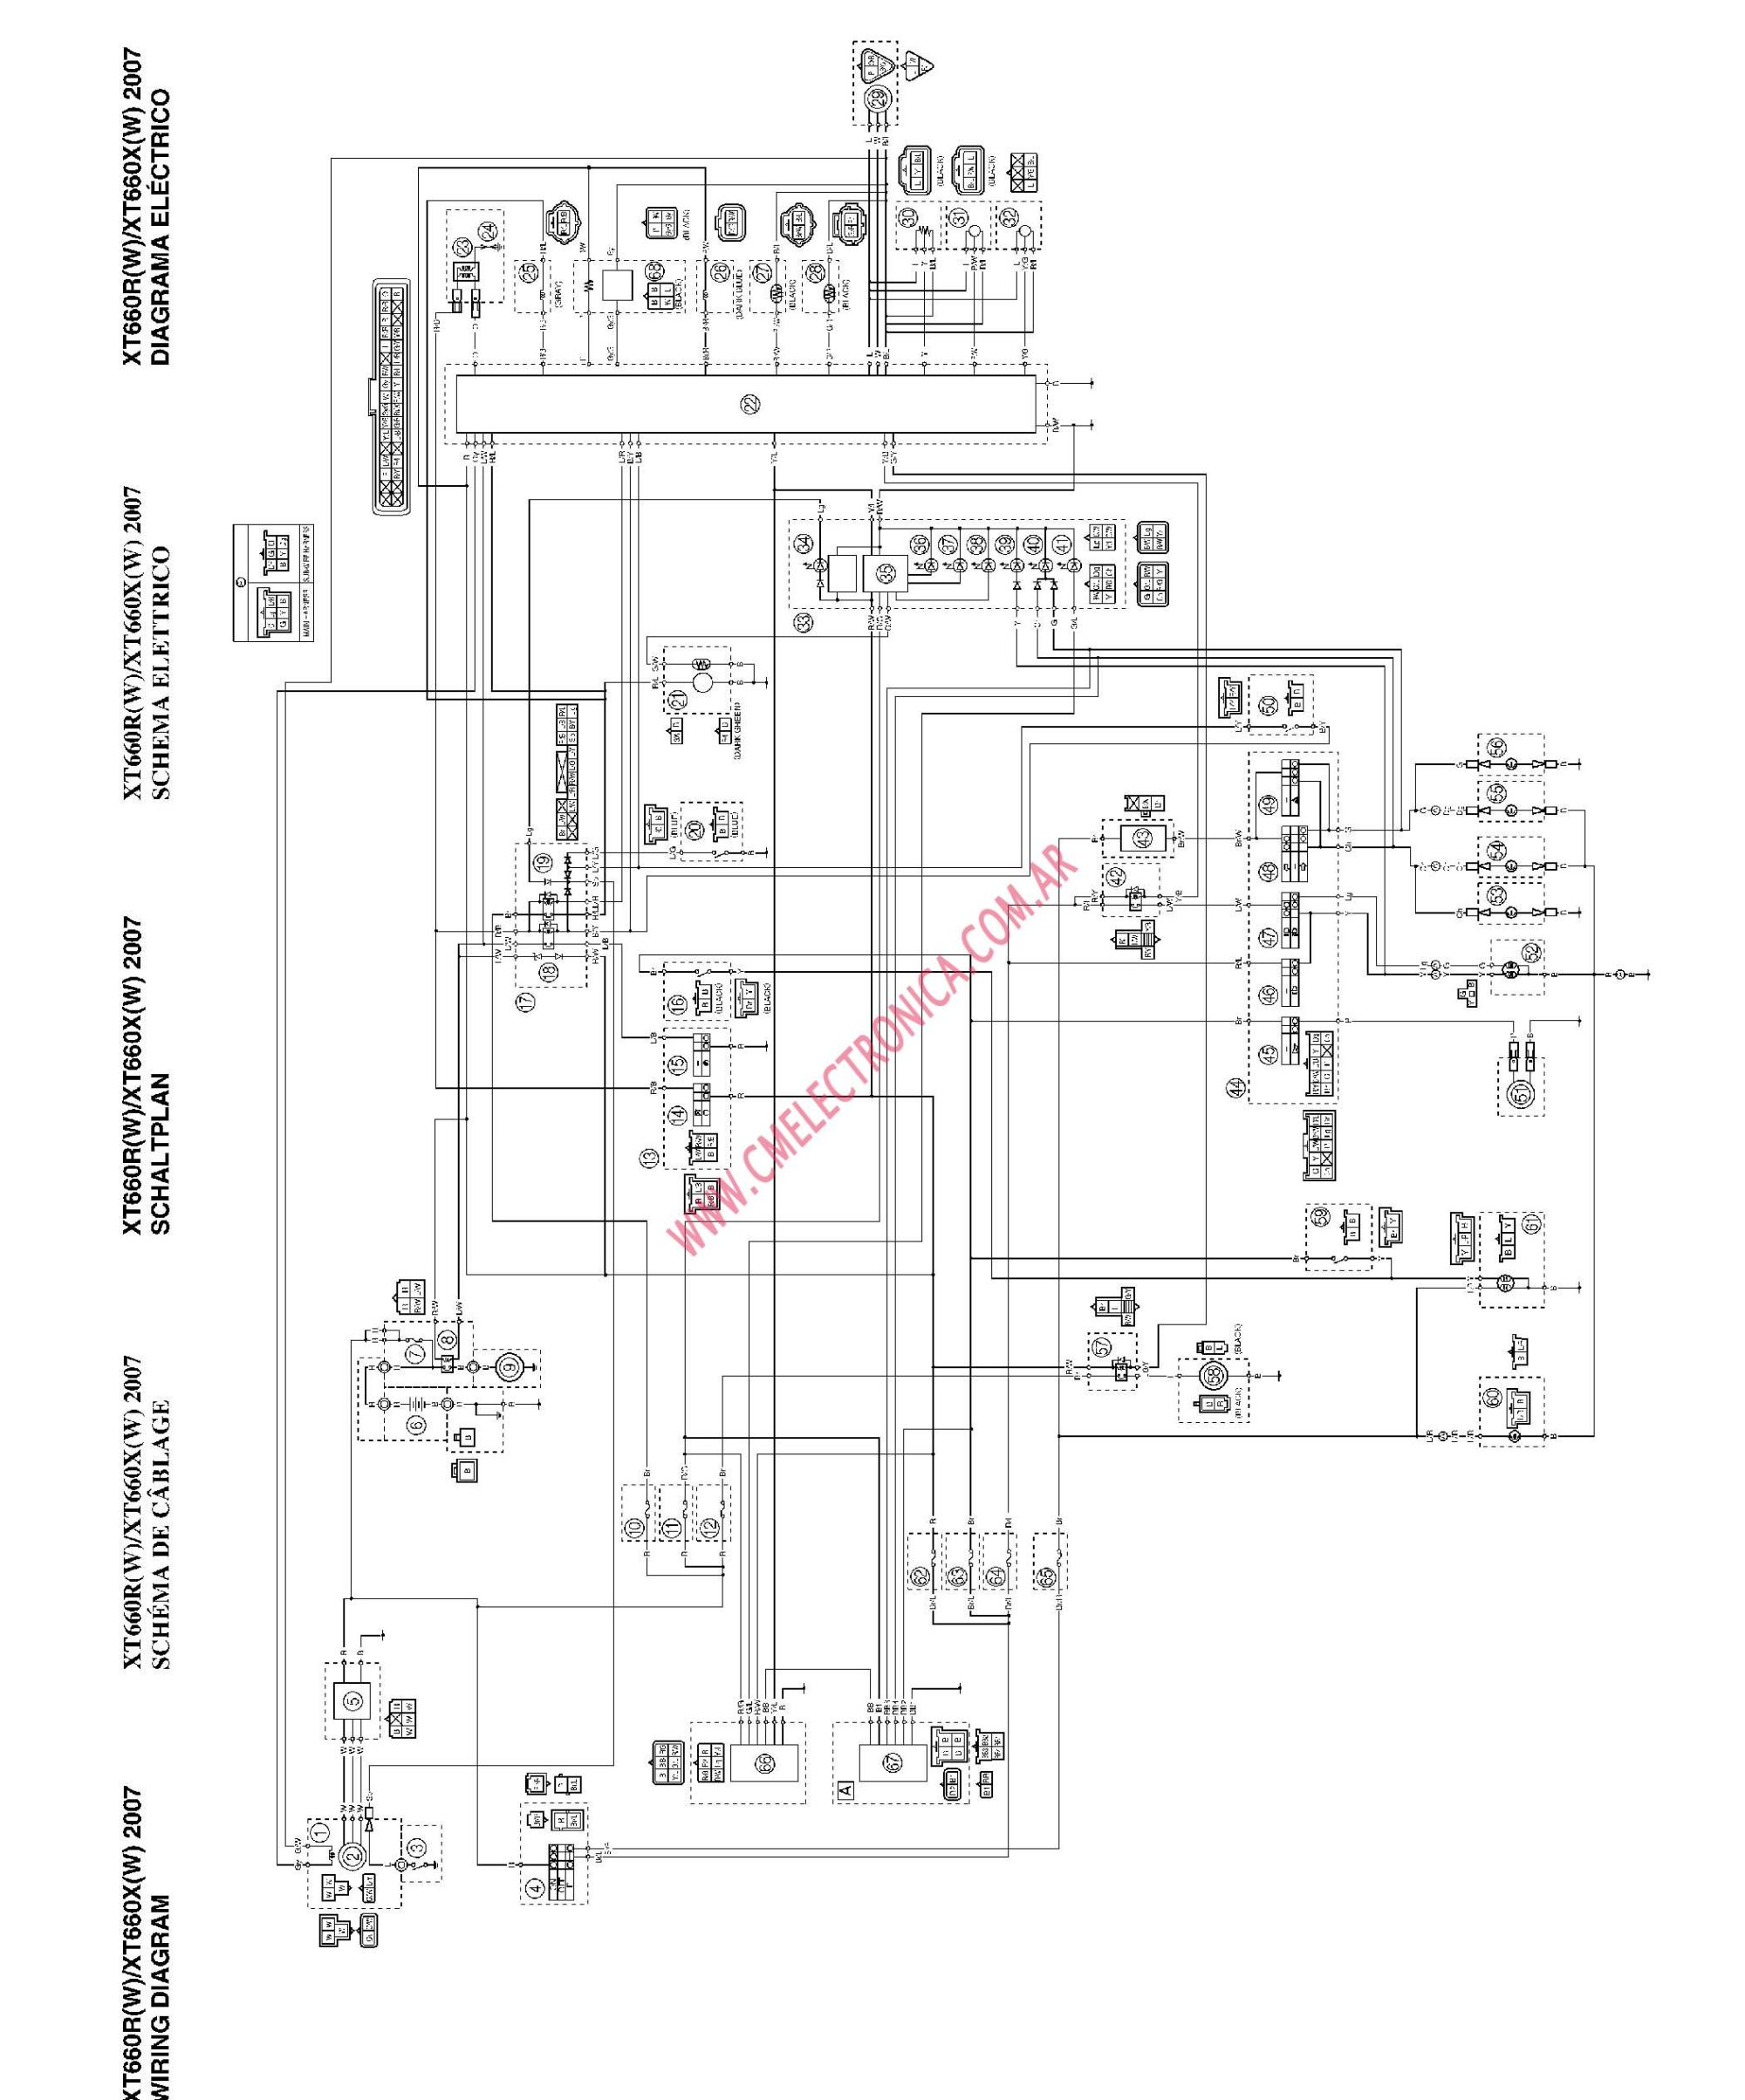 hight resolution of  yamaha raptor 660 wiring diagram 2005 grizzly 660 parts diagram imageresizertool com